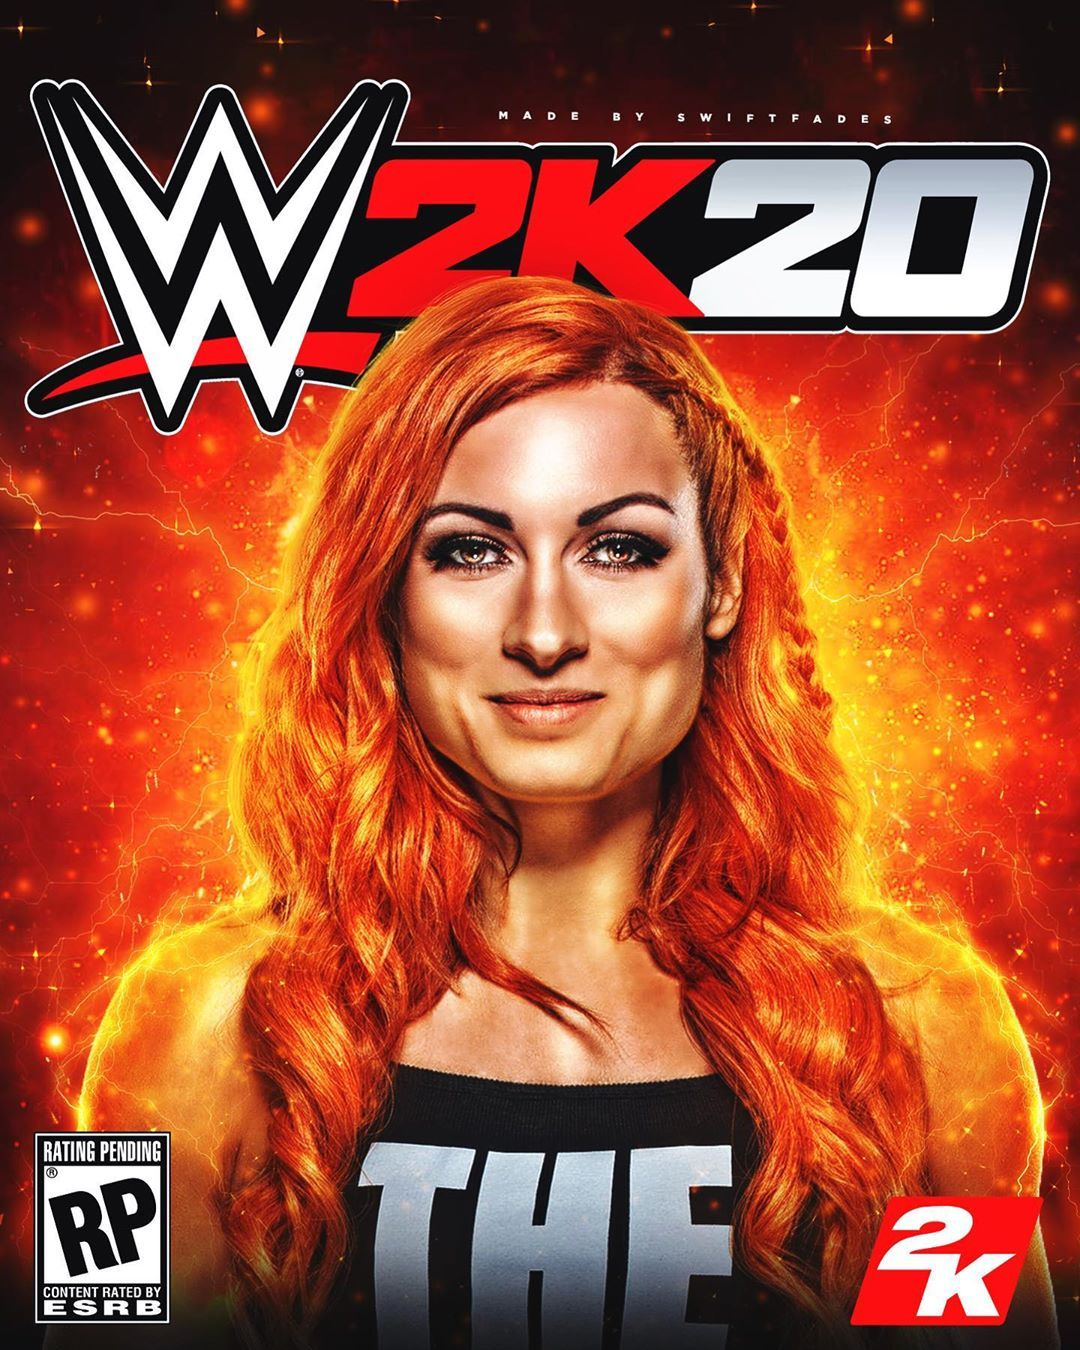 We 2k20 Cover Ft Beckylynchww Wwe Wallpapers Becky